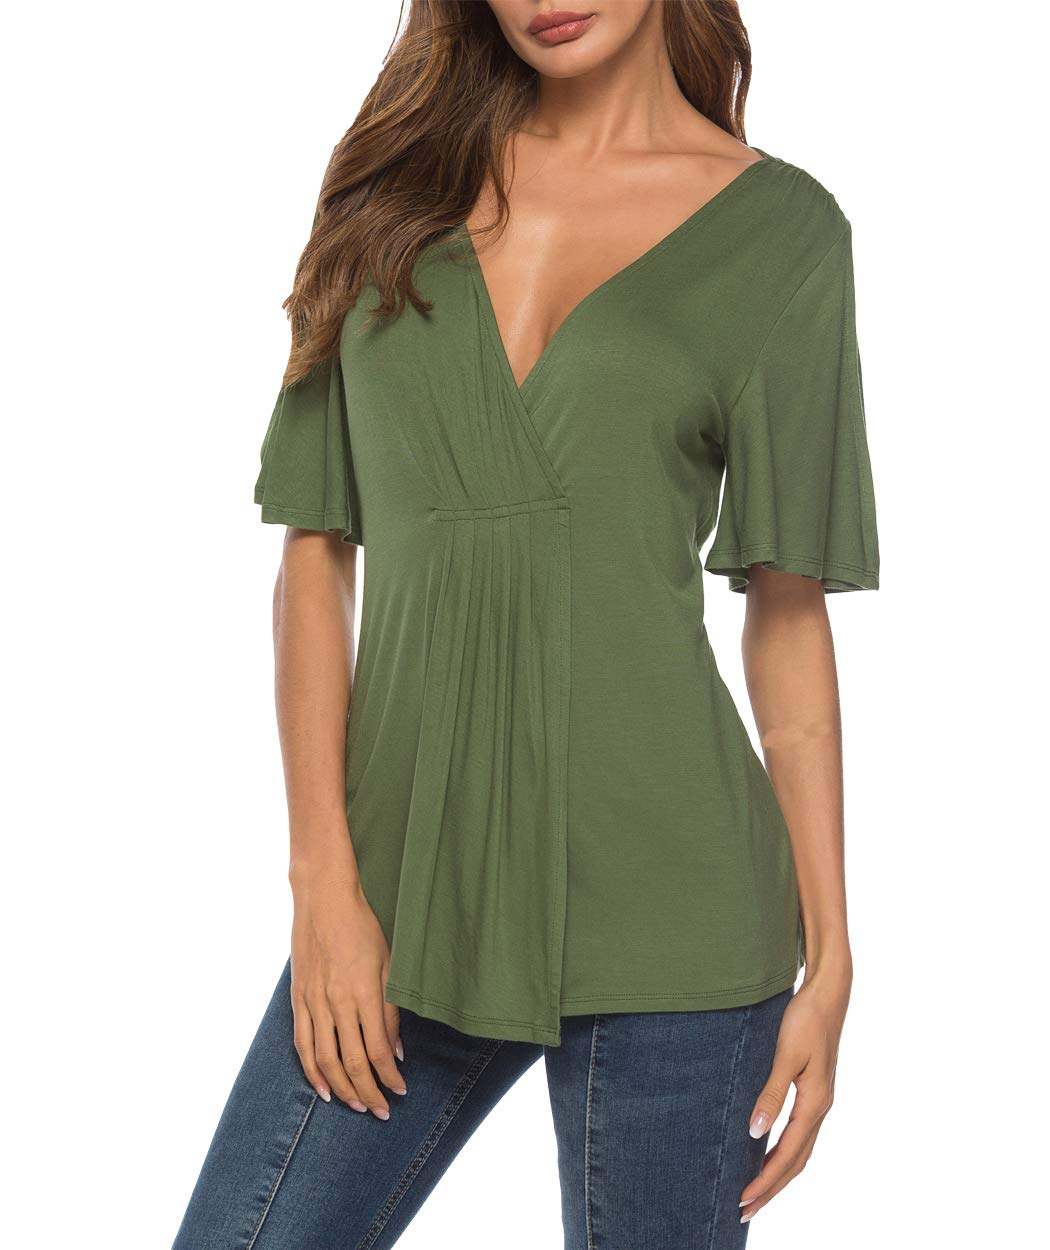 Eanklosco V Neck Shirts Womens Sexy Short Sleeve Cold Shoulder Tops Unique Ruffle Front Side Slit T Shirts (M, Army Green)